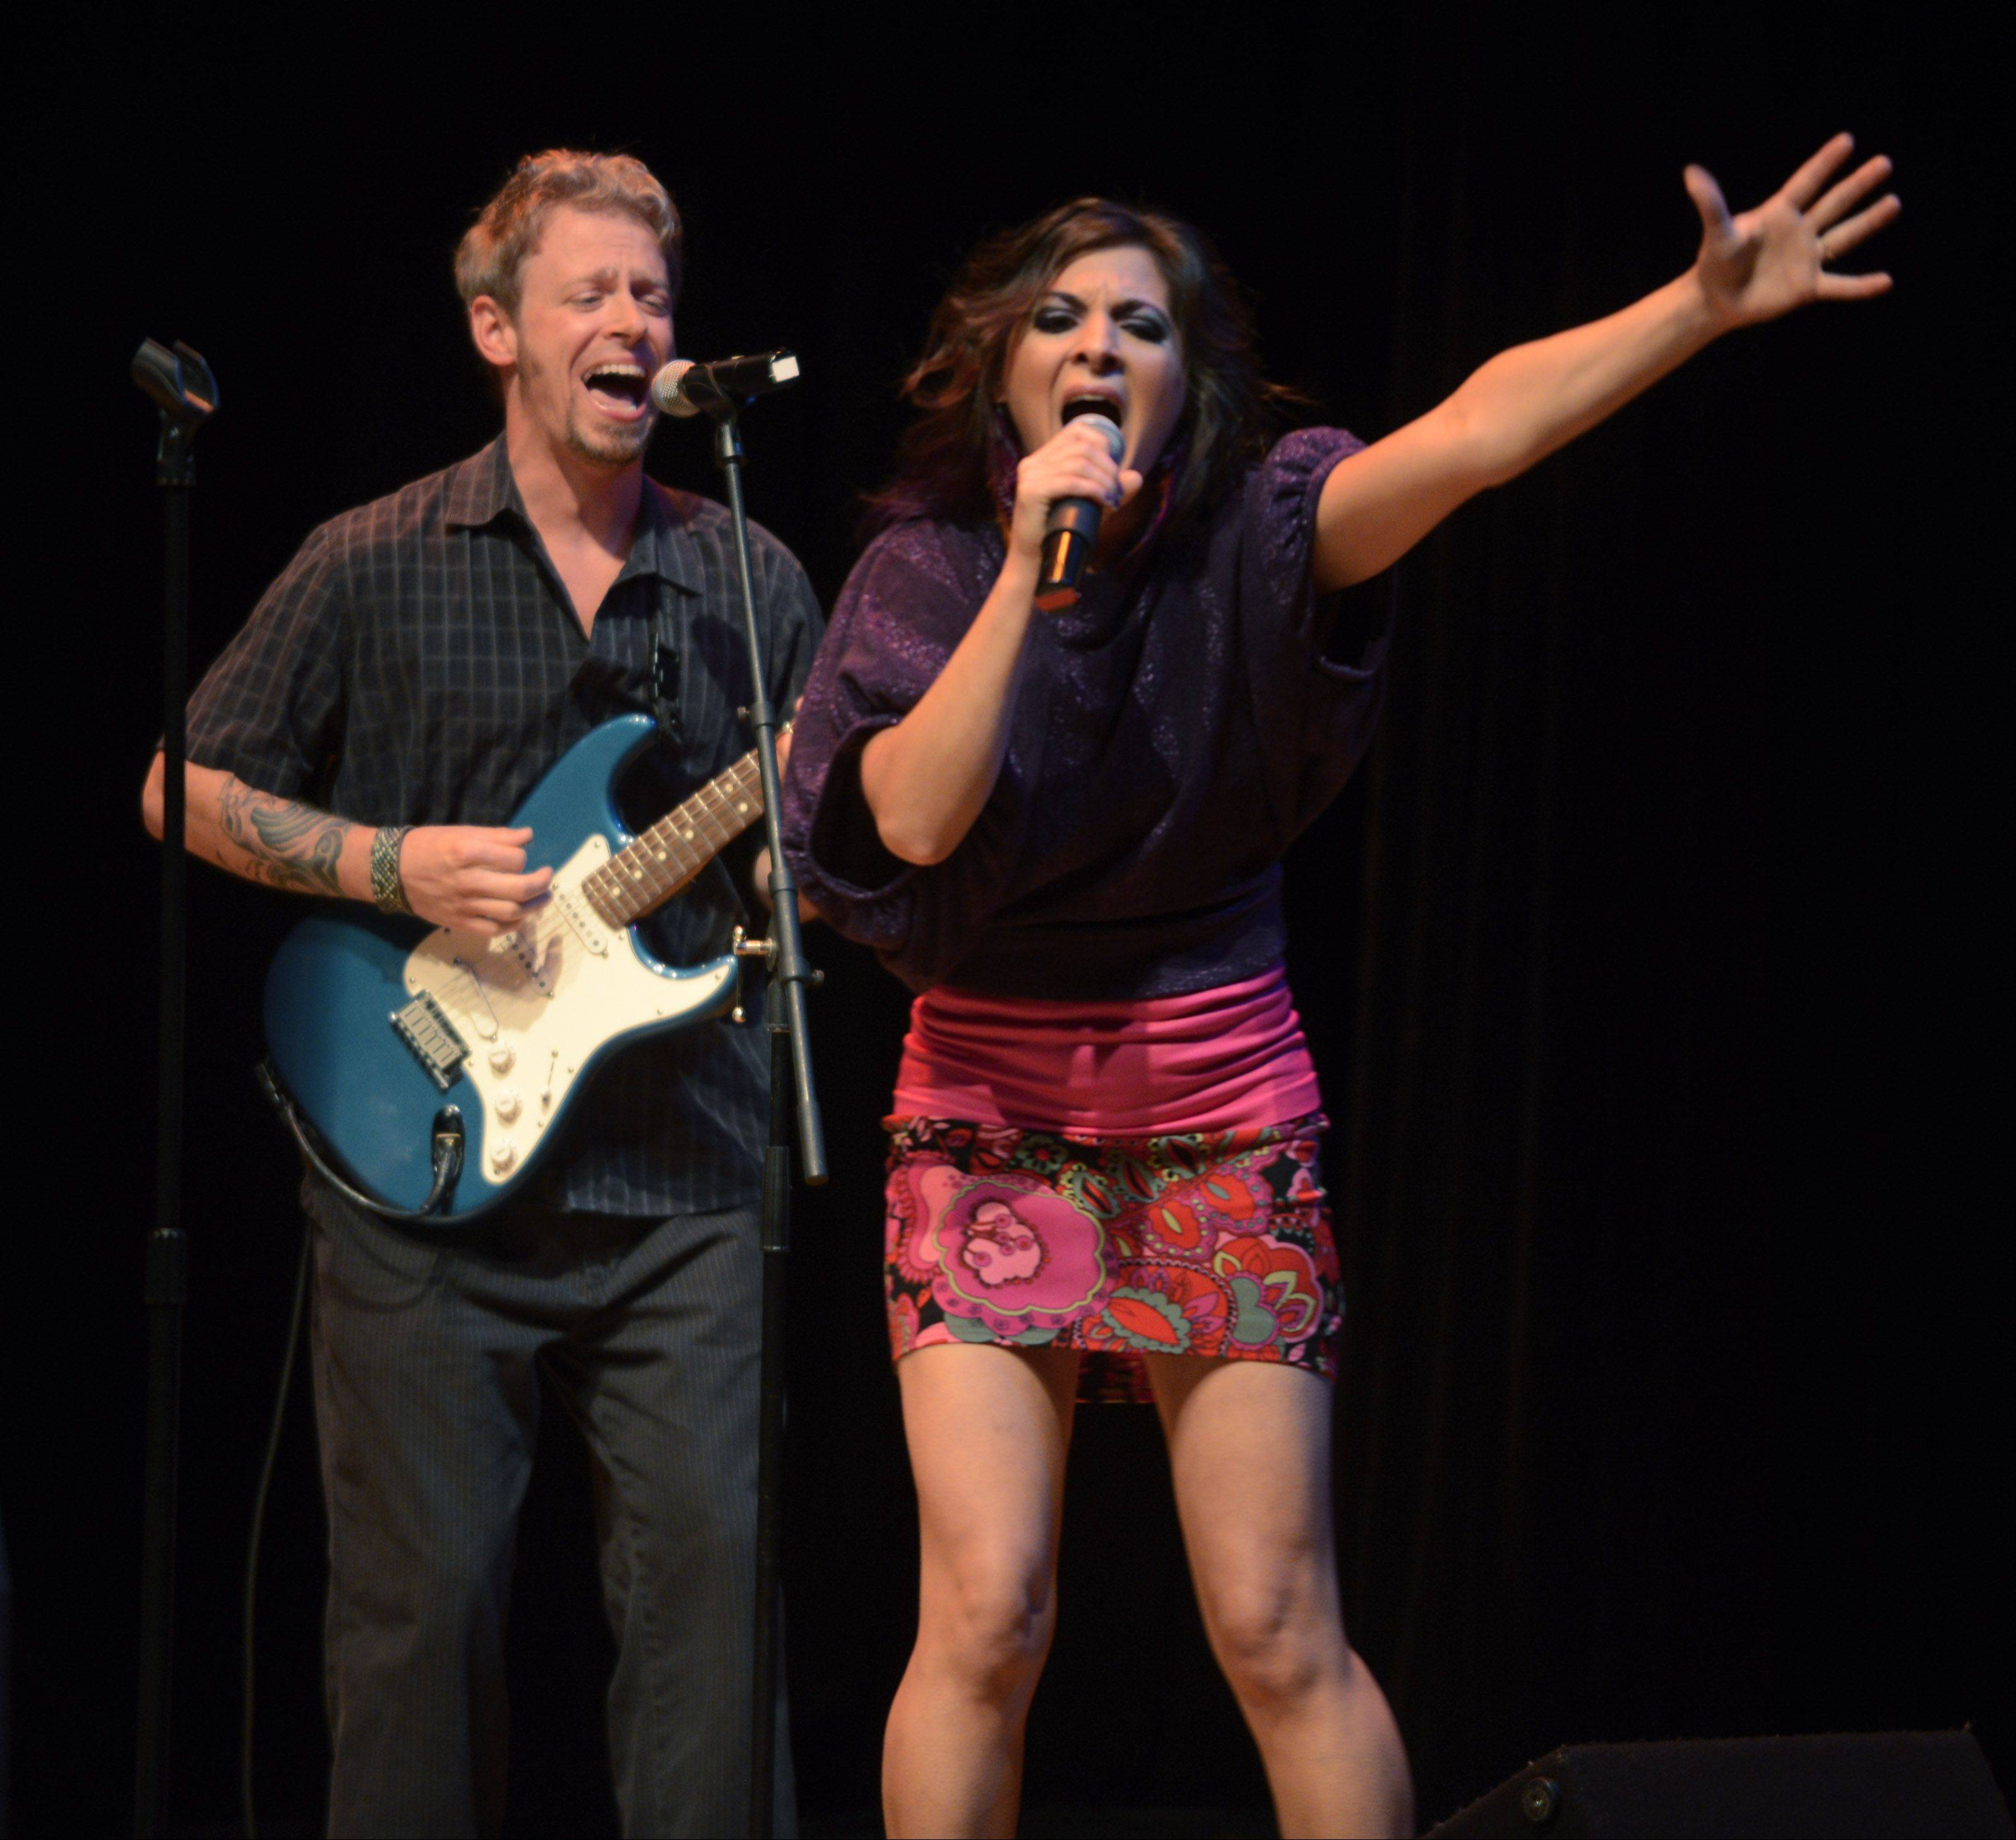 Sean and Karen, one of the Top 10 finalists from the 2013 edition of Suburban Chicago's Got Talent, perform with a band on Saturday, Oct. 5, at Duke's Alehouse in Crystal Lake.